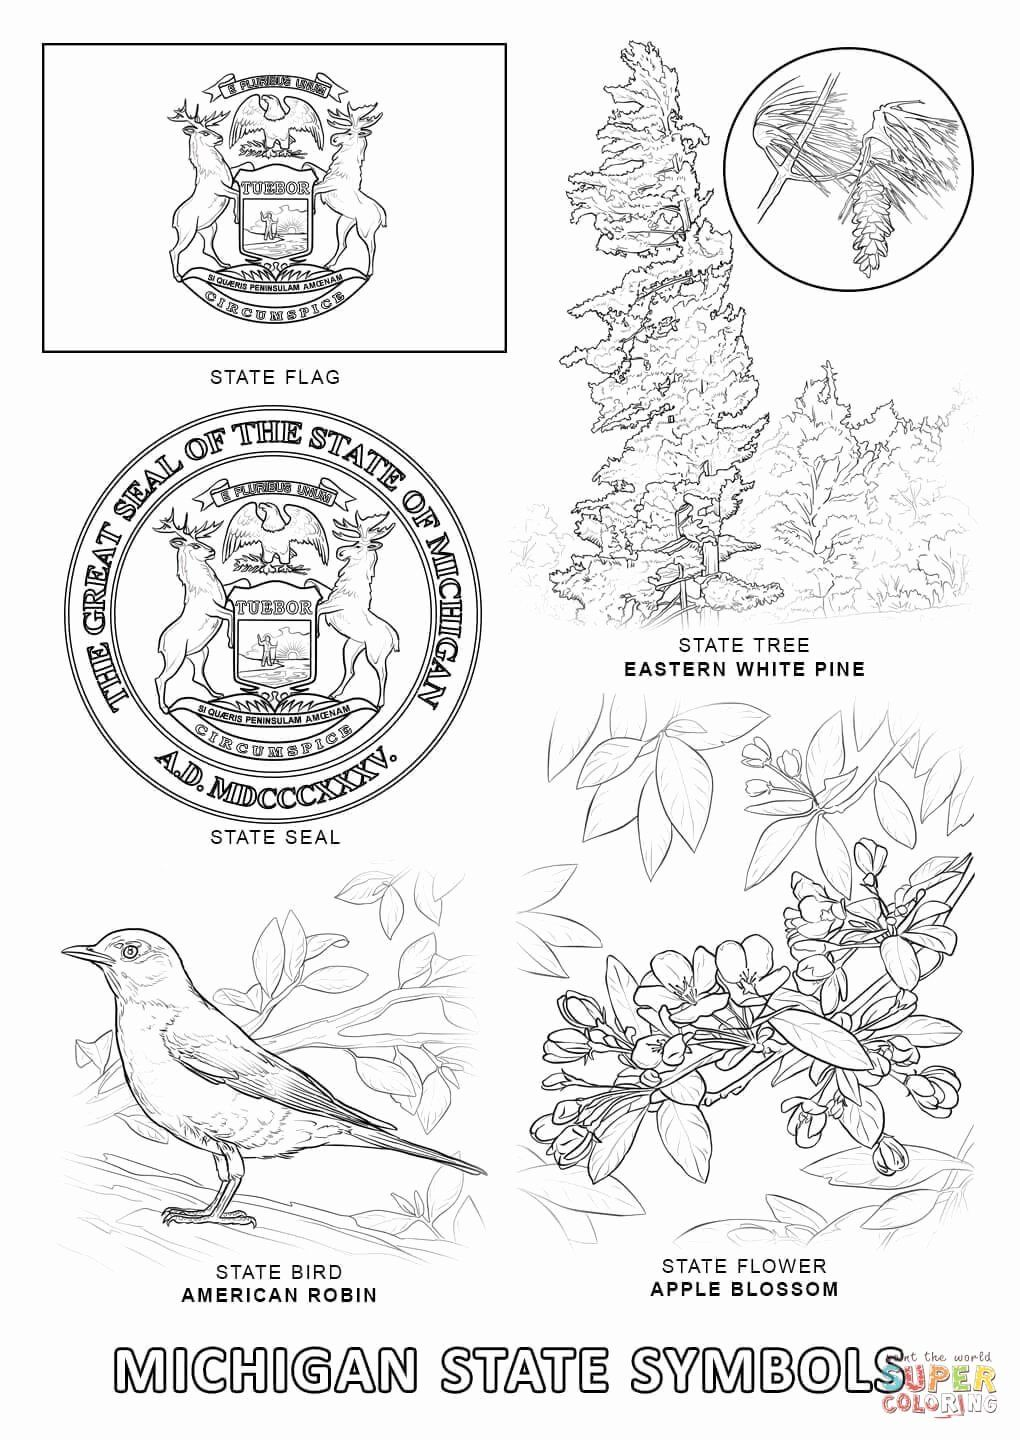 Oklahoma State Flag Coloring Page Luxury Michigan State Symbols Super Coloring Flag Coloring Pages State Symbols Texas Symbols